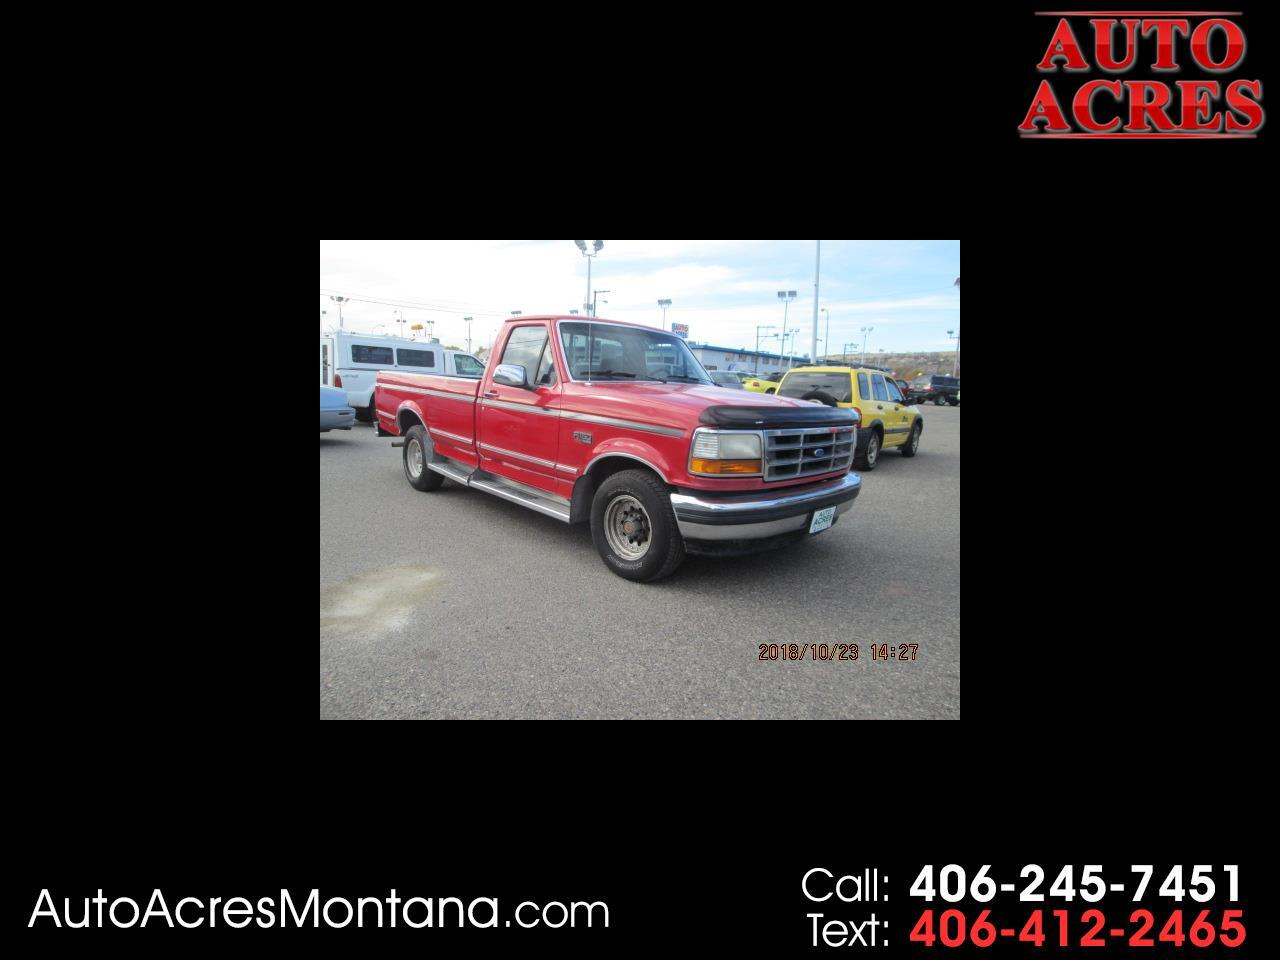 1993 Ford F-150 Flareside 117